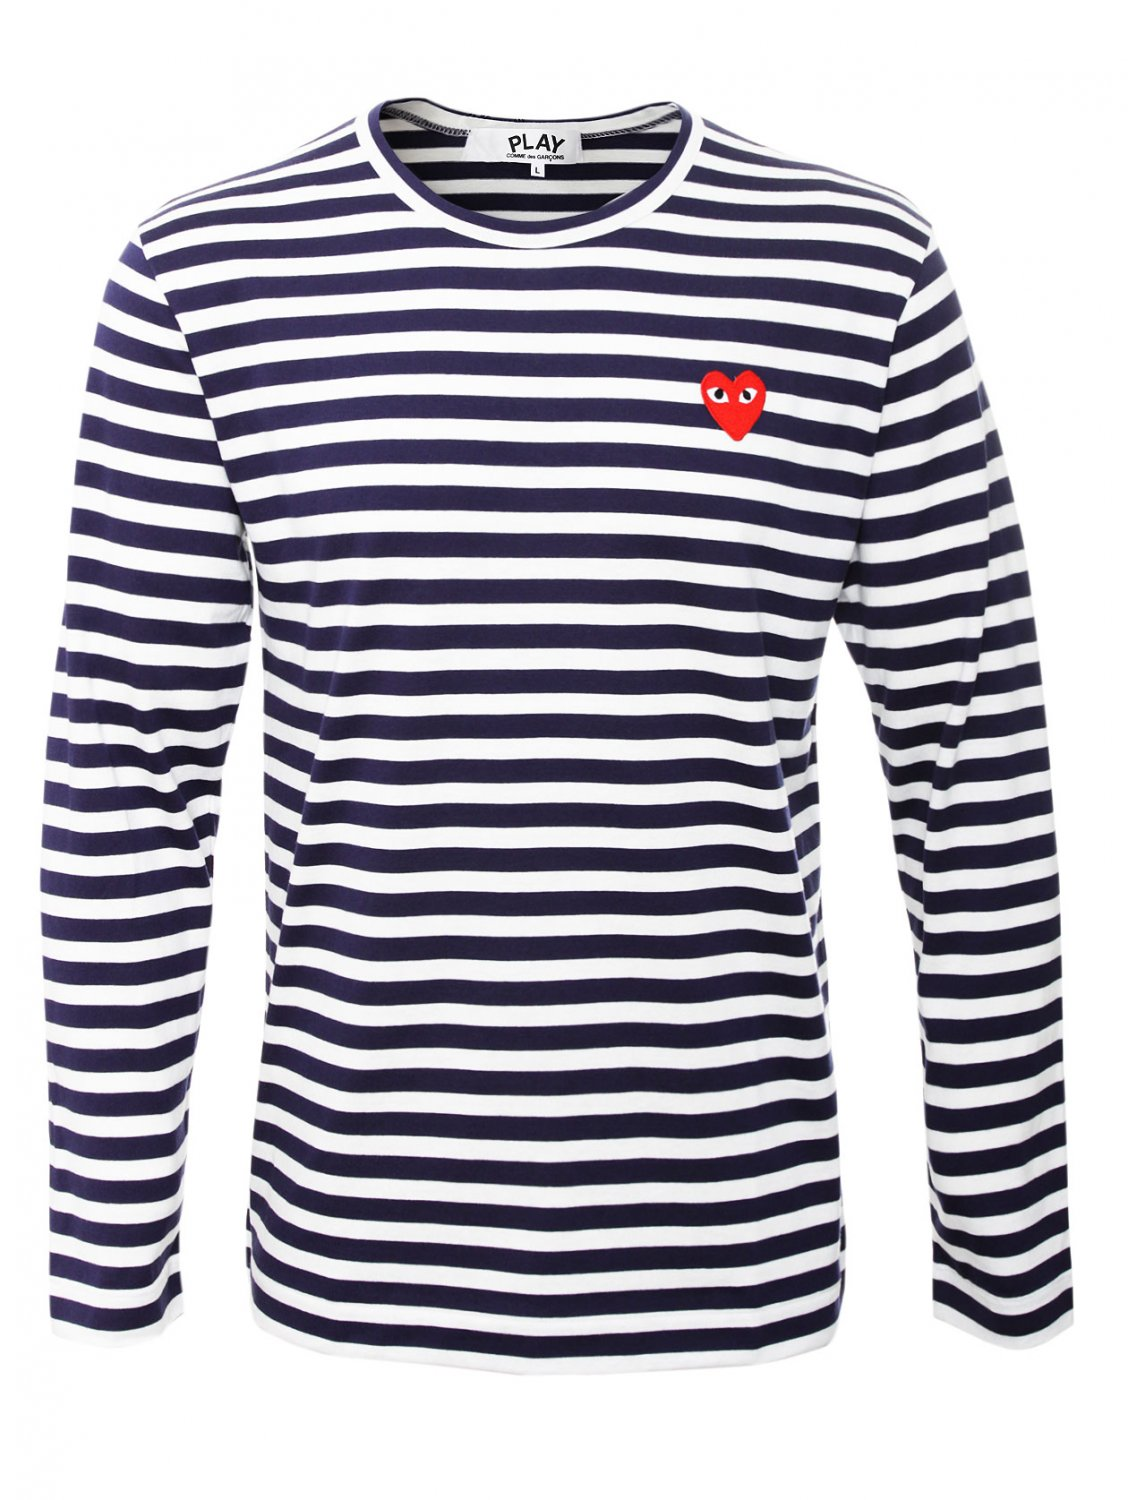 comme des gar ons play mens red heart stripe t shirt blue. Black Bedroom Furniture Sets. Home Design Ideas